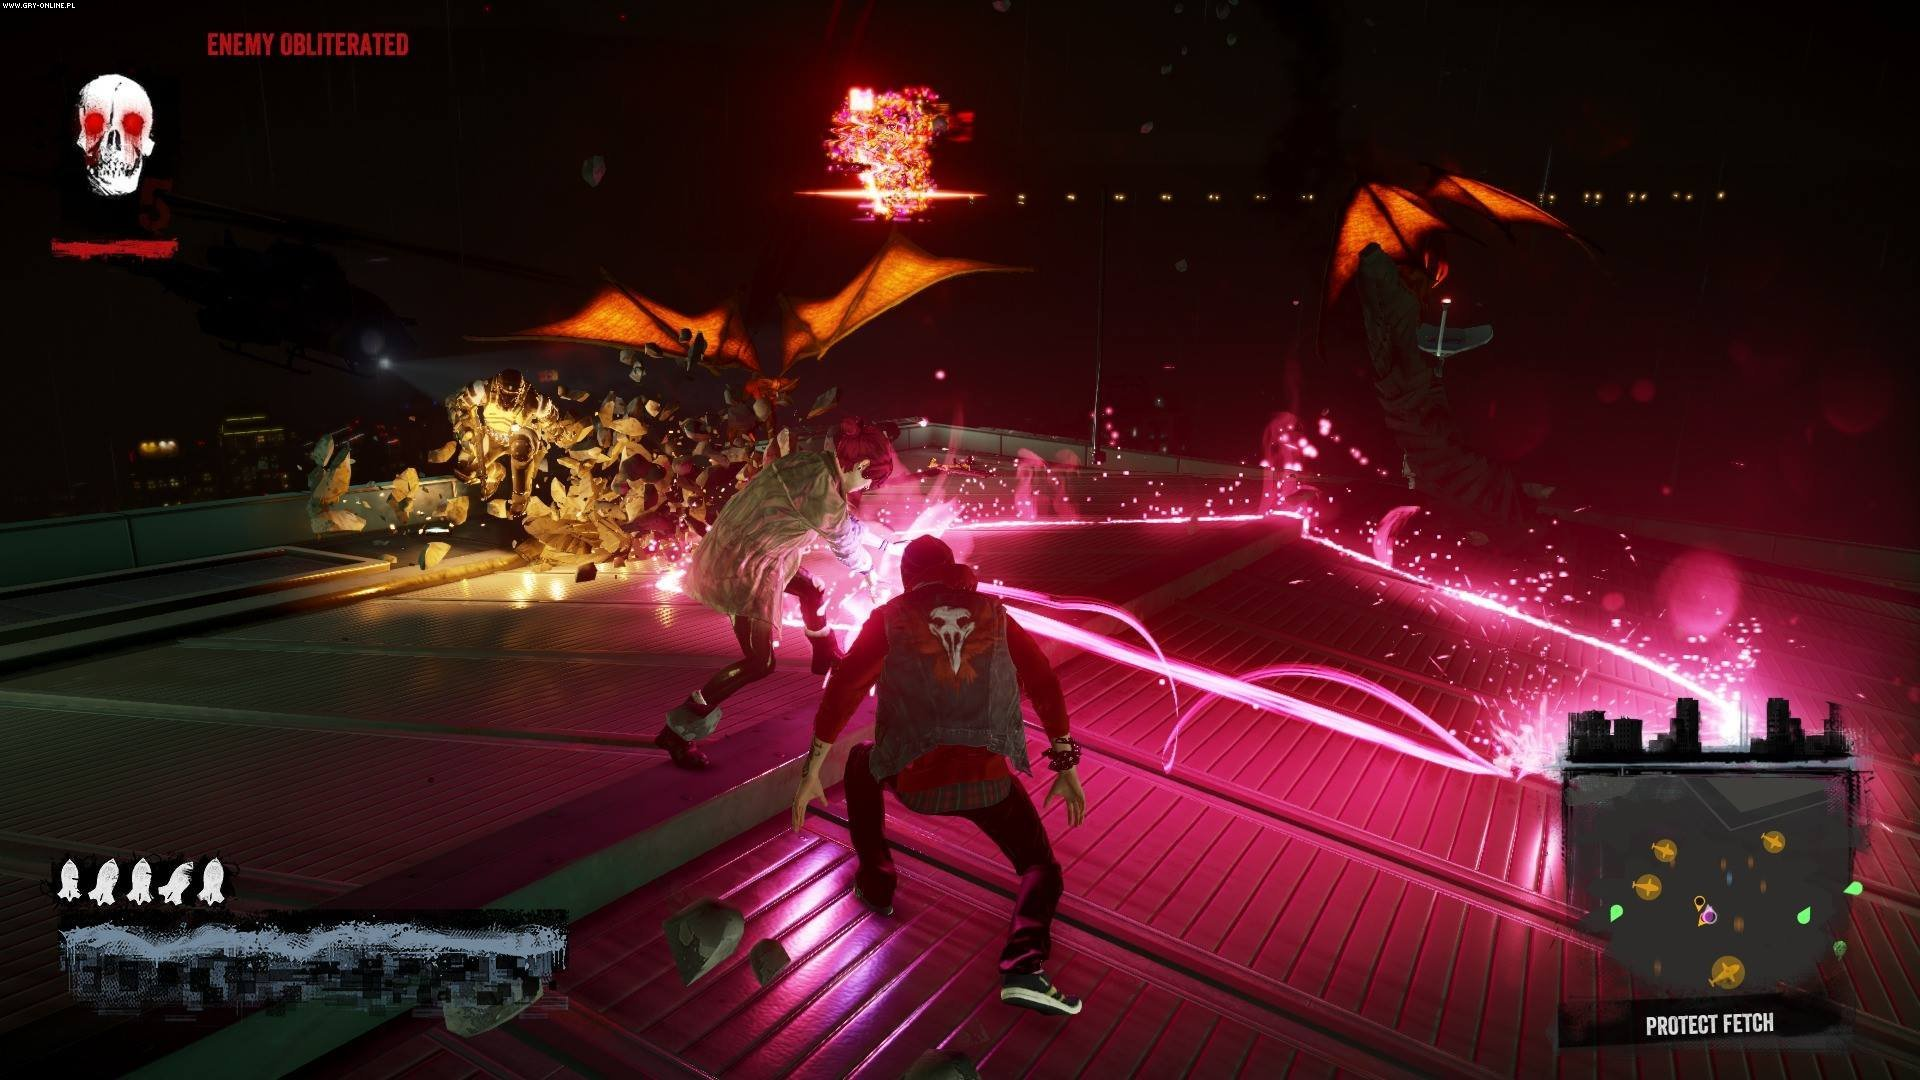 inFamous: Second Son PS4 Games Image 15/138, Sucker Punch, Sony Interactive Entertainment